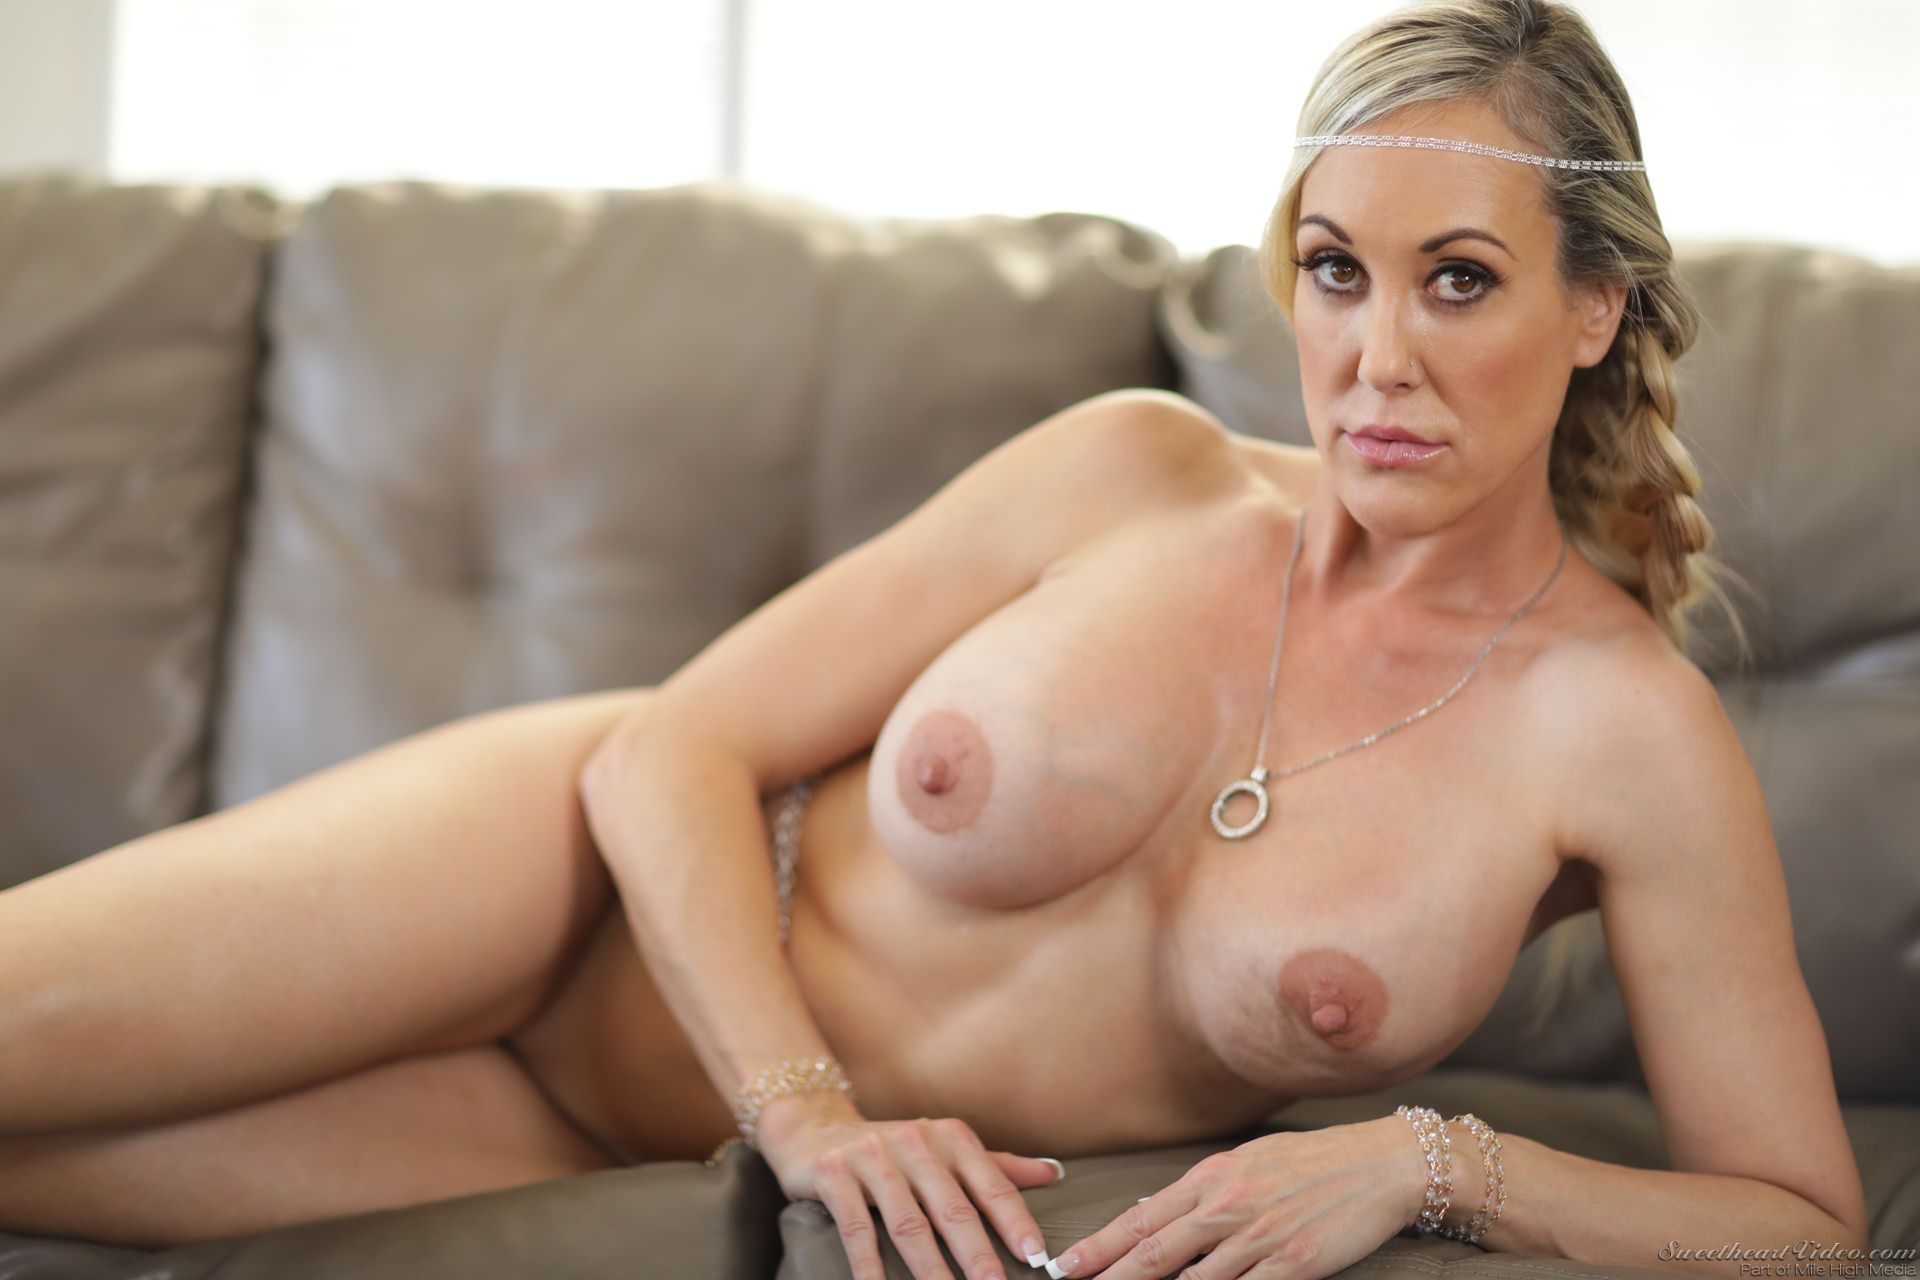 Round Ass Milf Porn Star Brandi Love Screwed